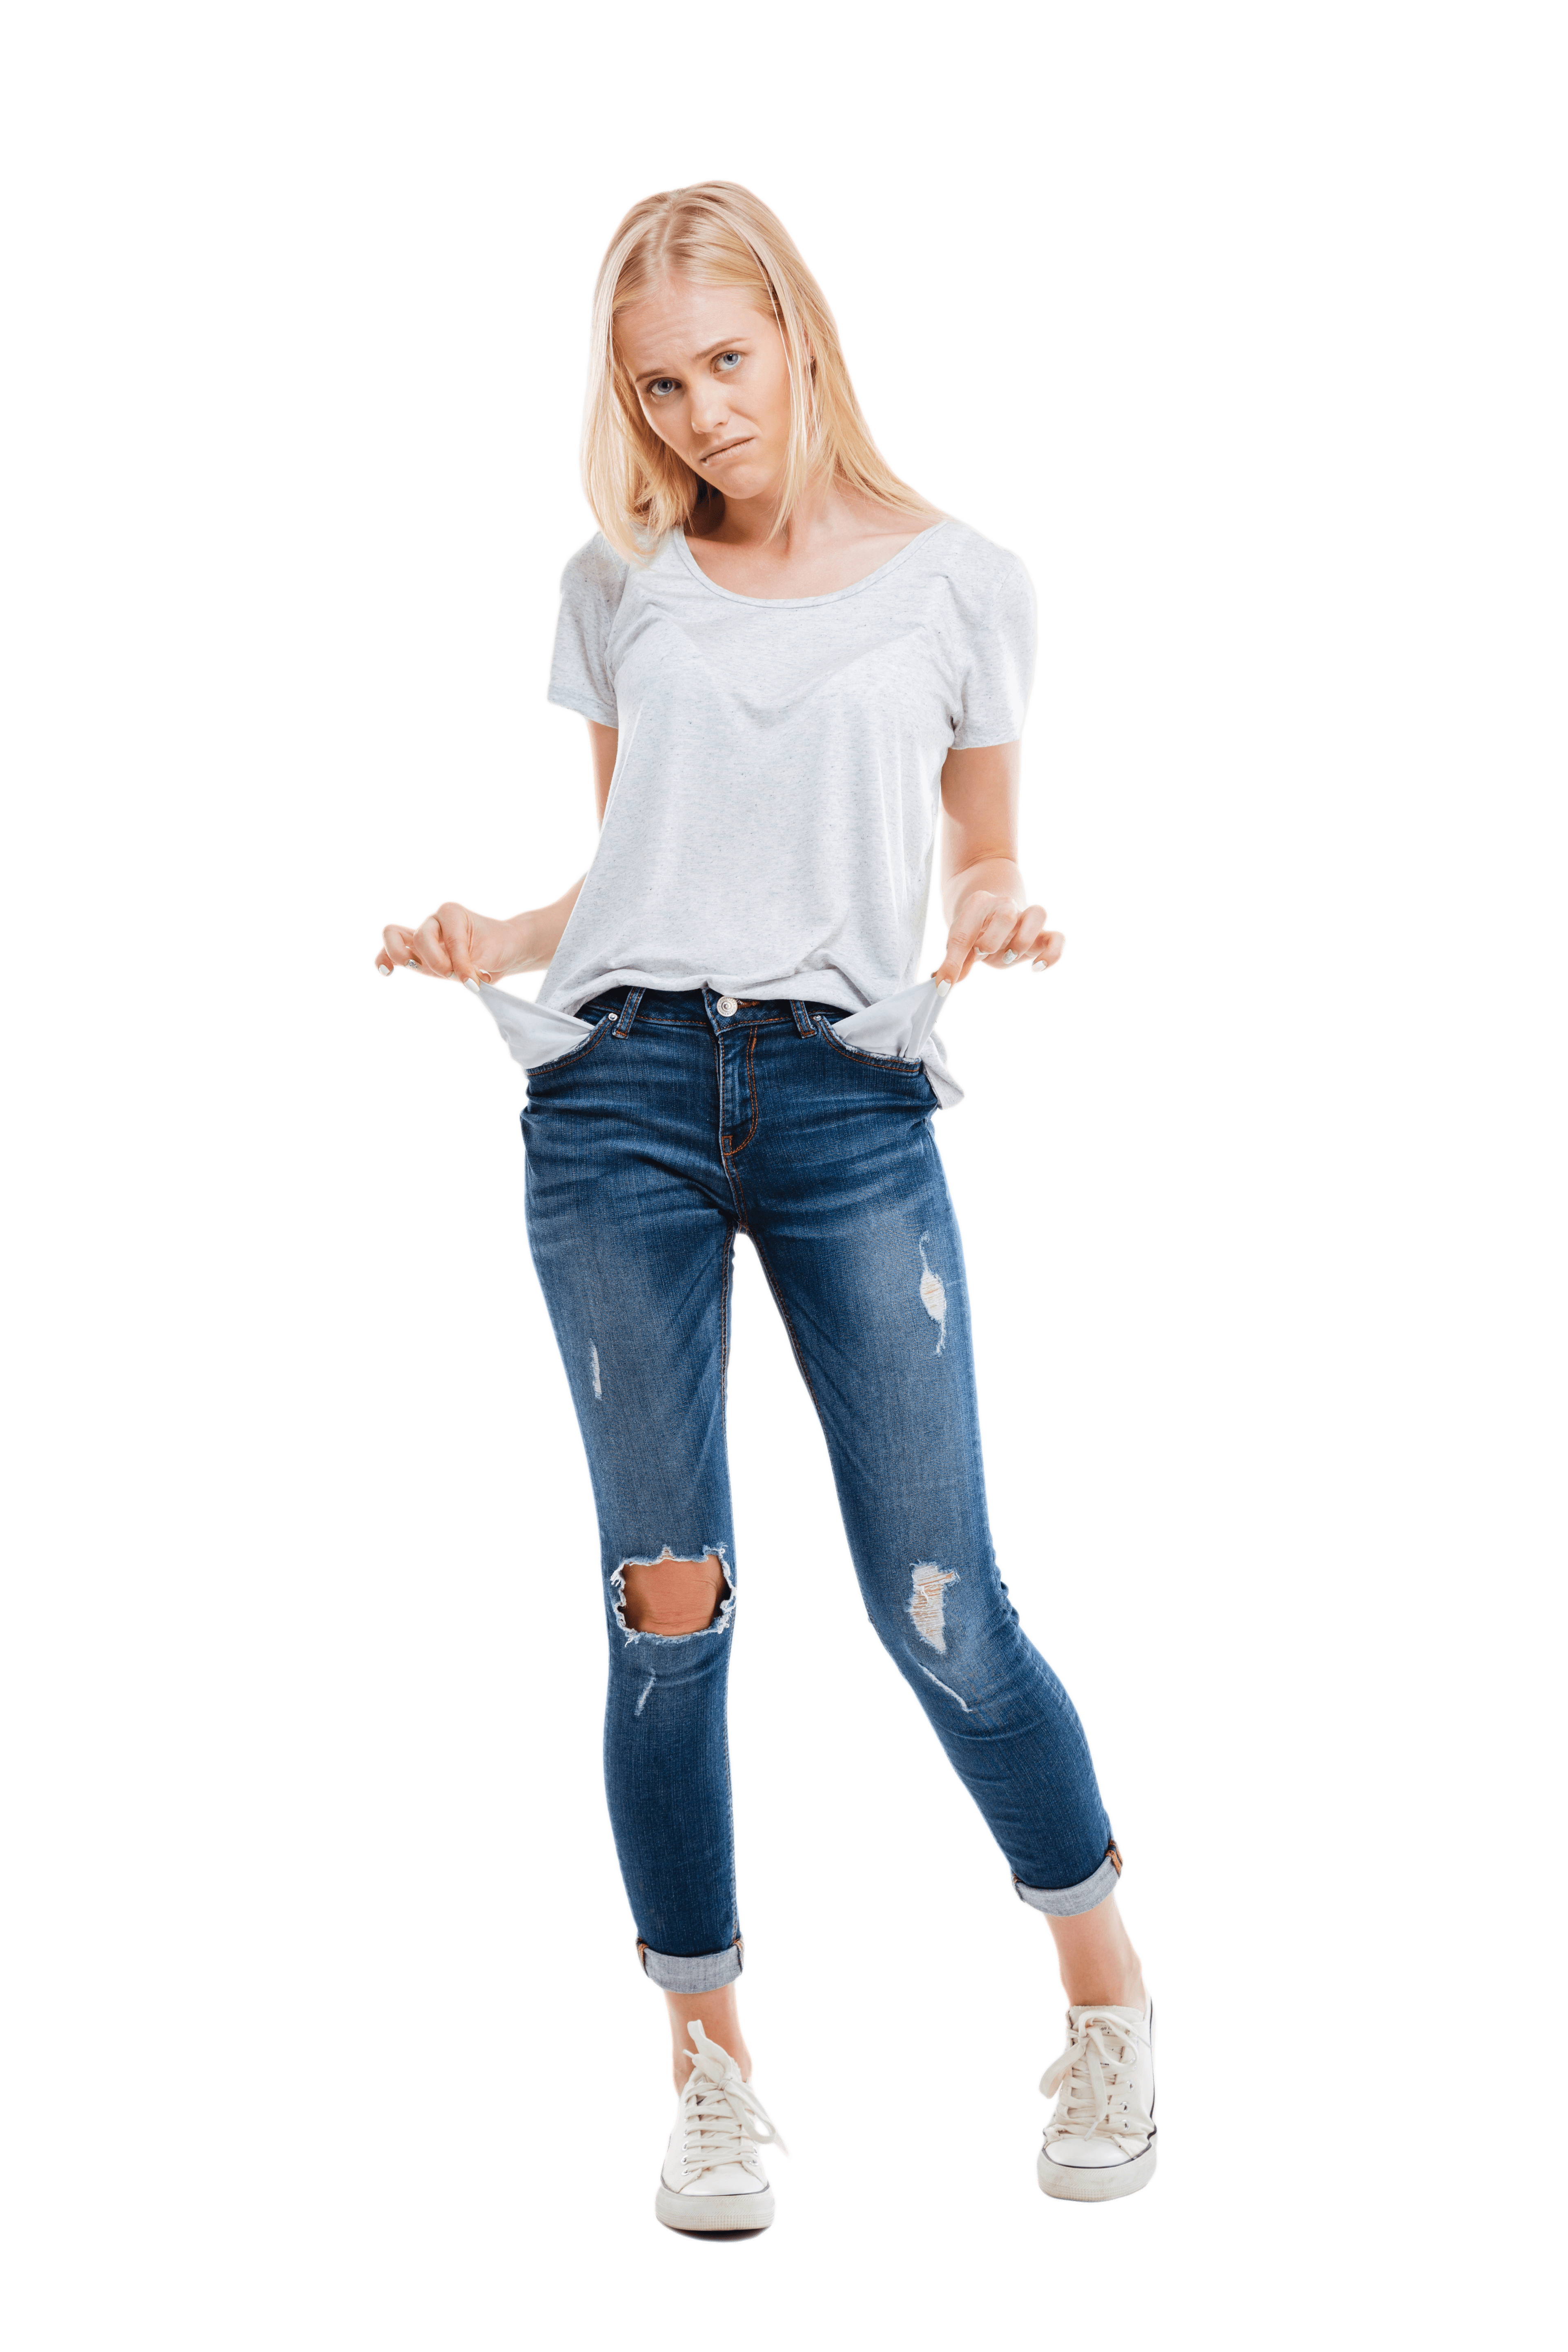 Depressed Young Woman with Empty Pockets